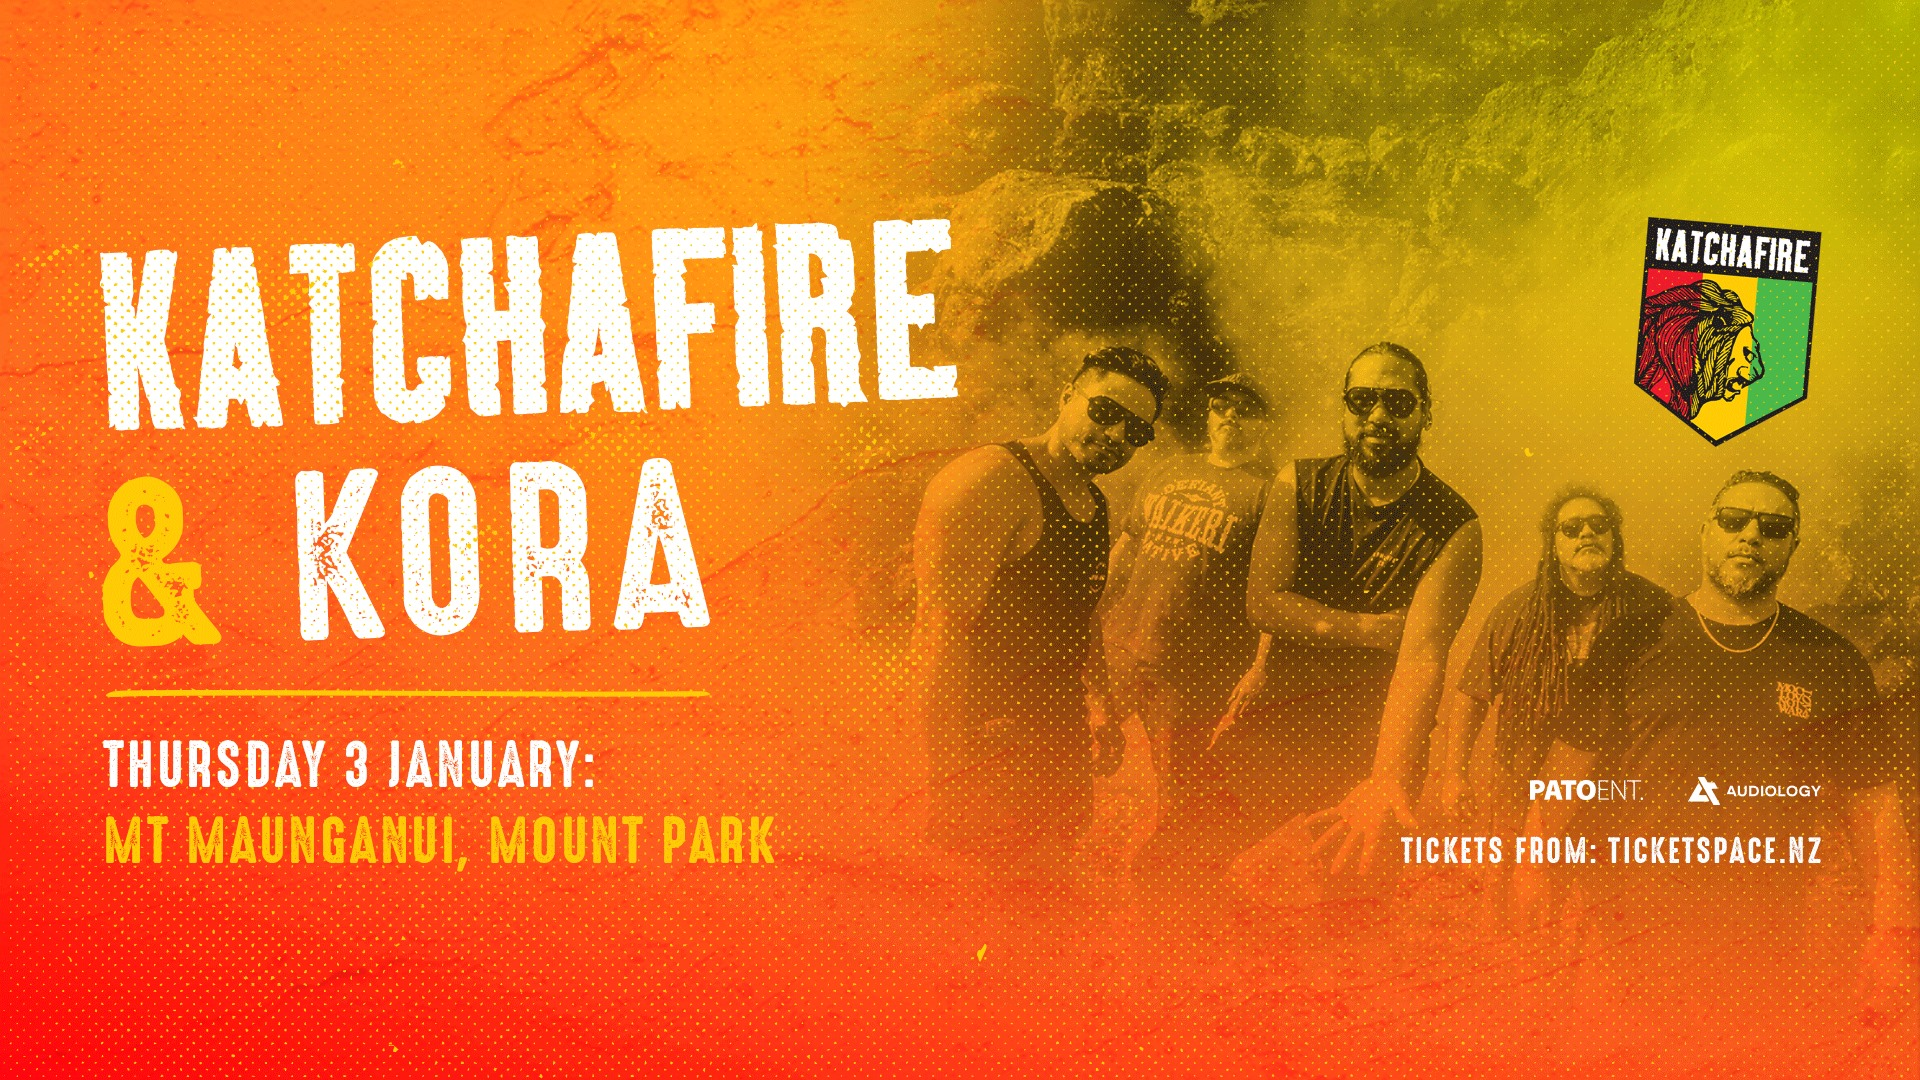 Tickets for KATCHAFIRE & KORA - Mt Maunganui in Mount Maunganui from Ticketspace